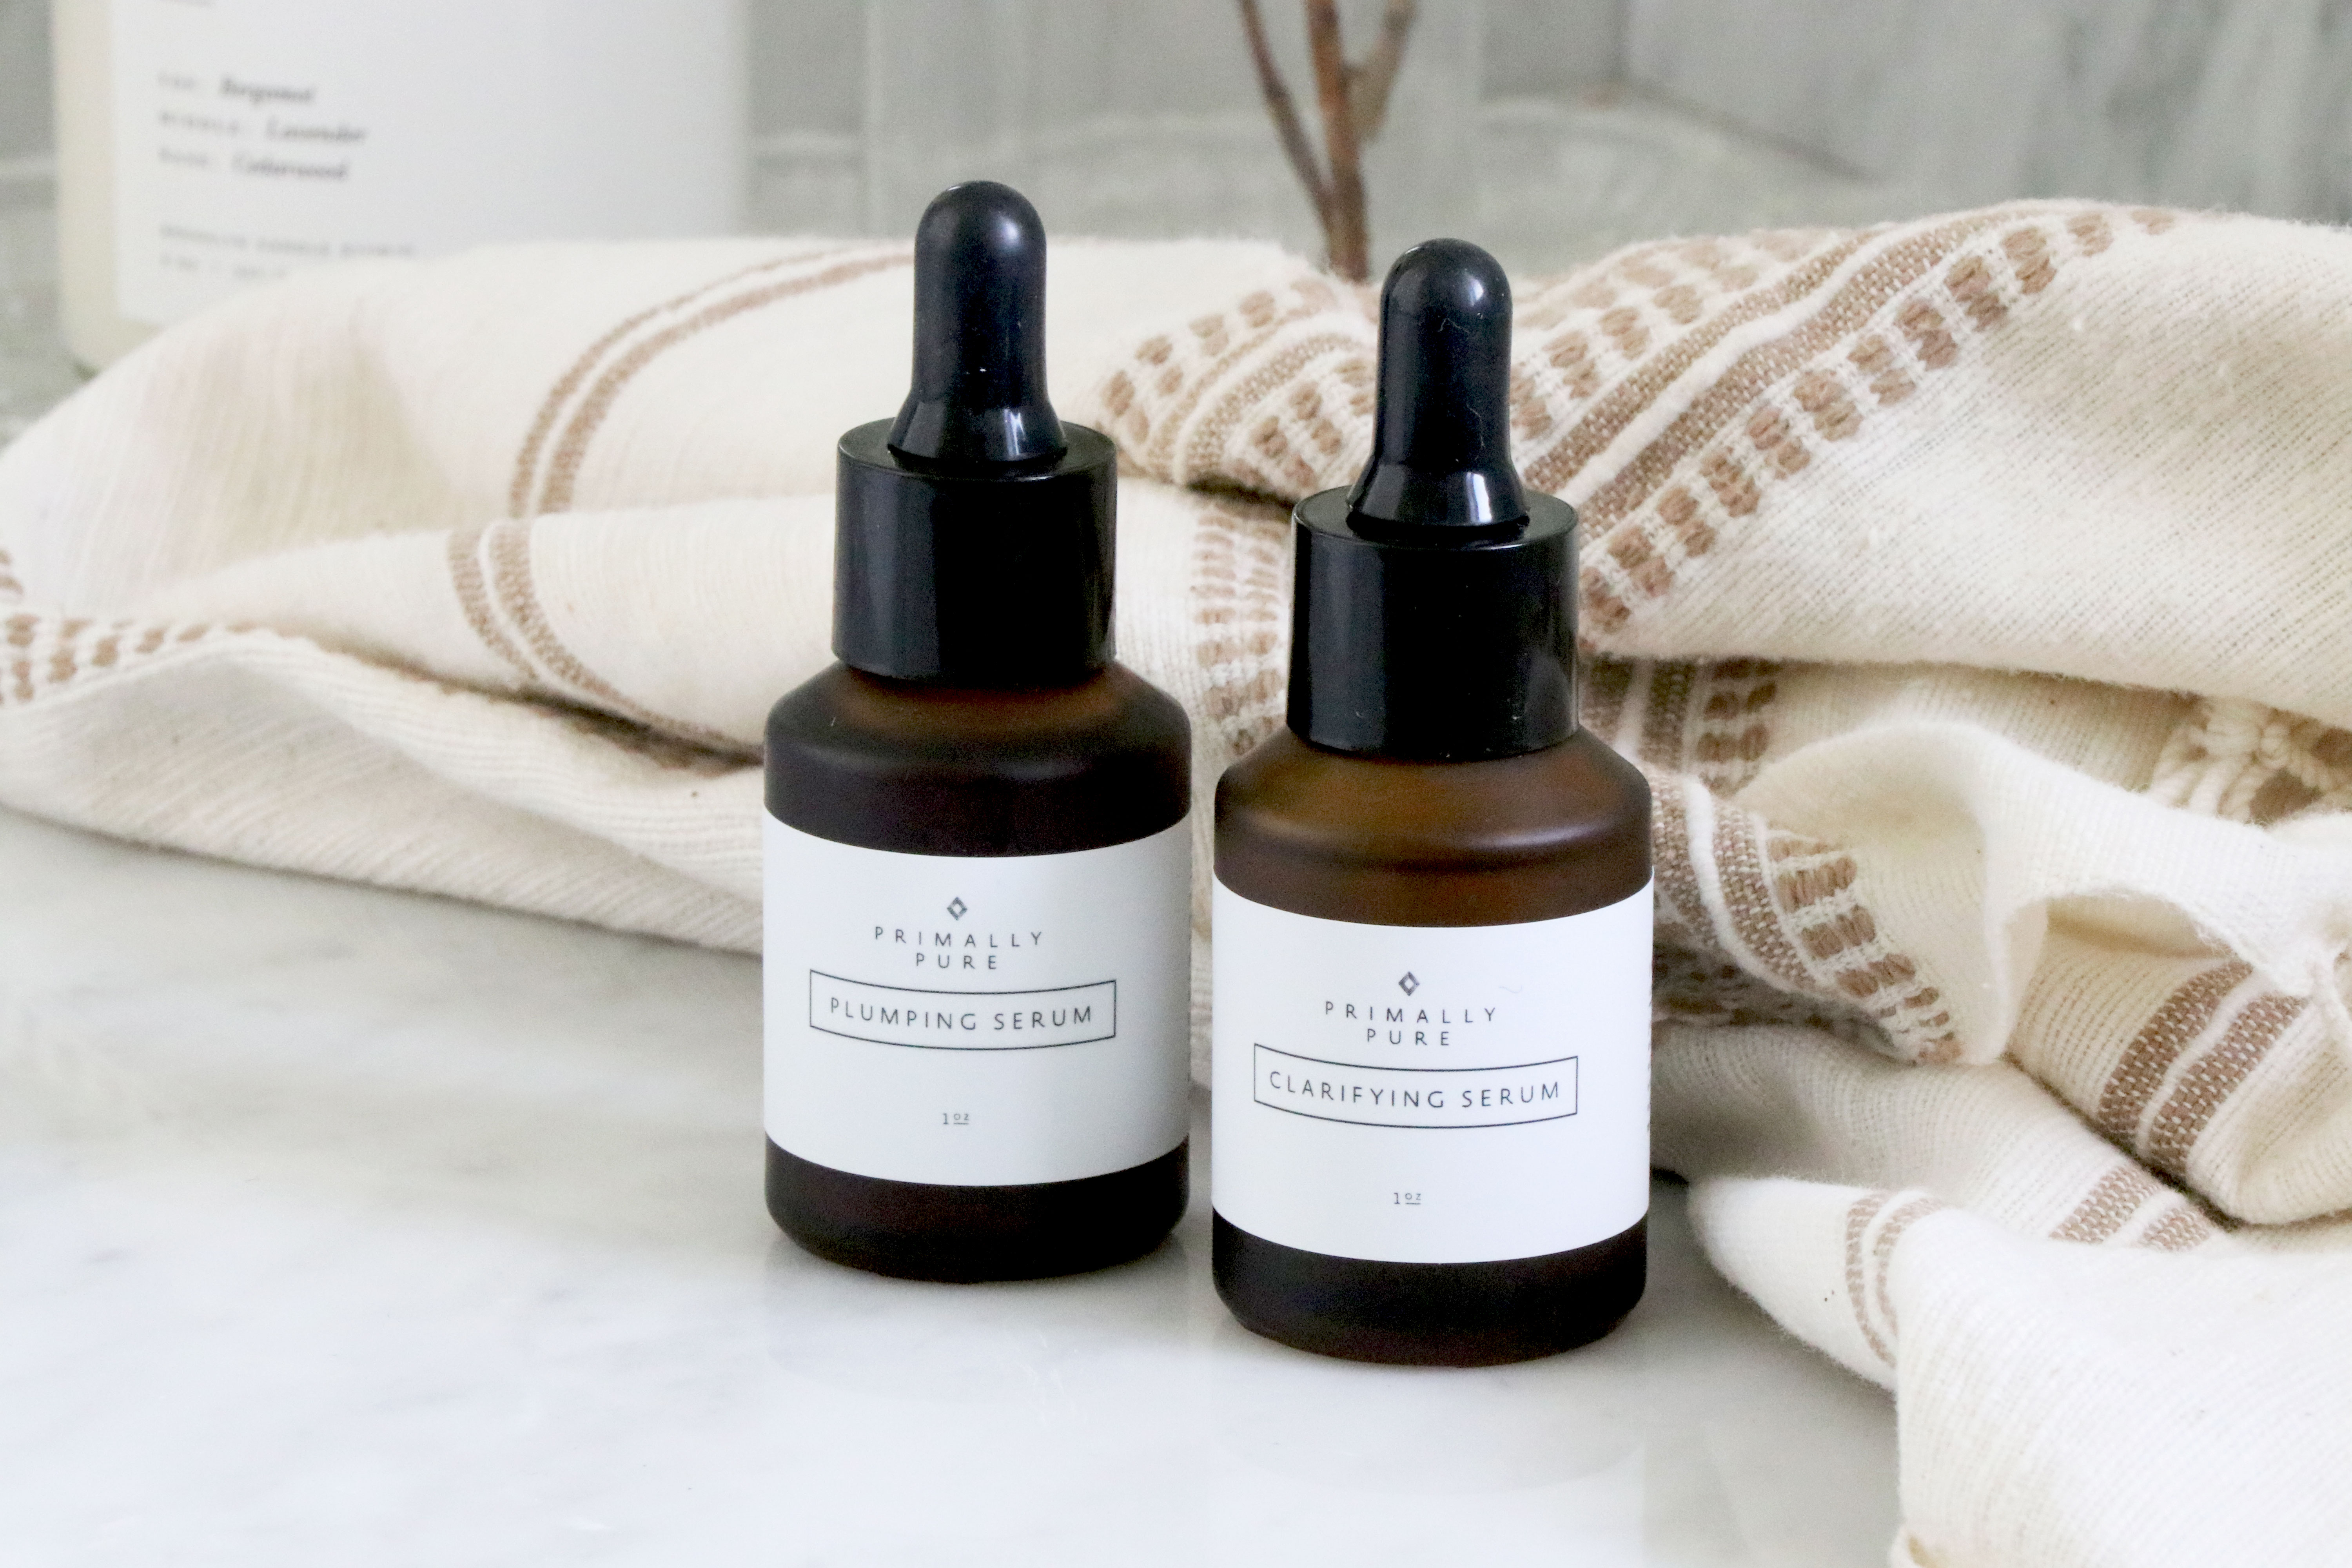 two bottles of Primally Pure serum on counter top with towel in the background.